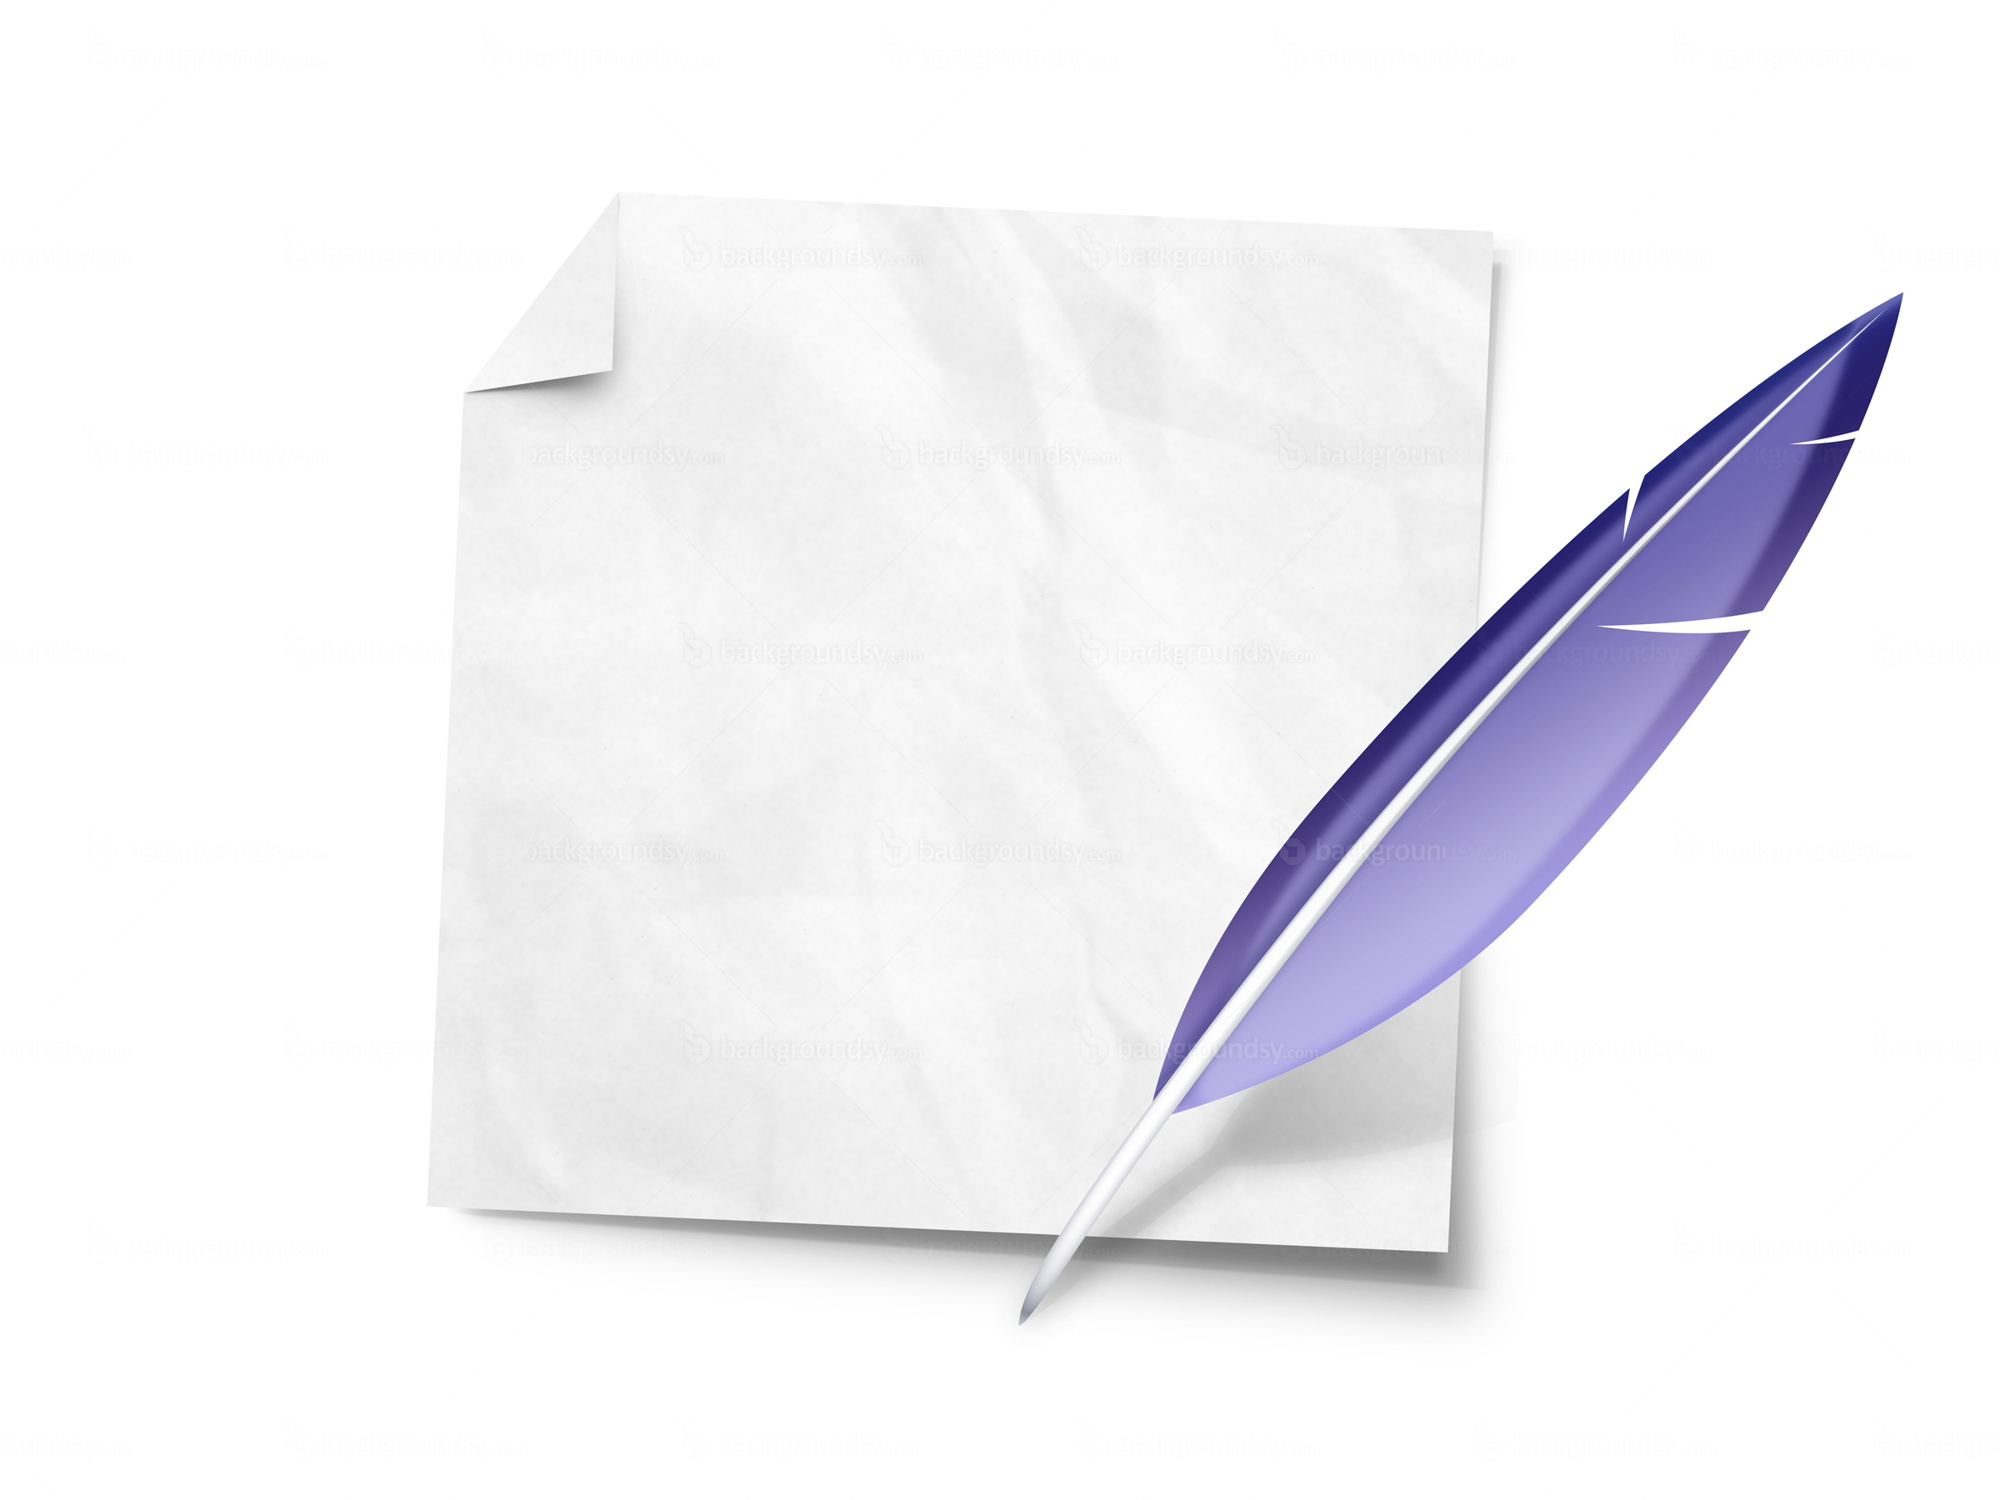 Feather quill and paper note (PNG)   Backgroundsy.com